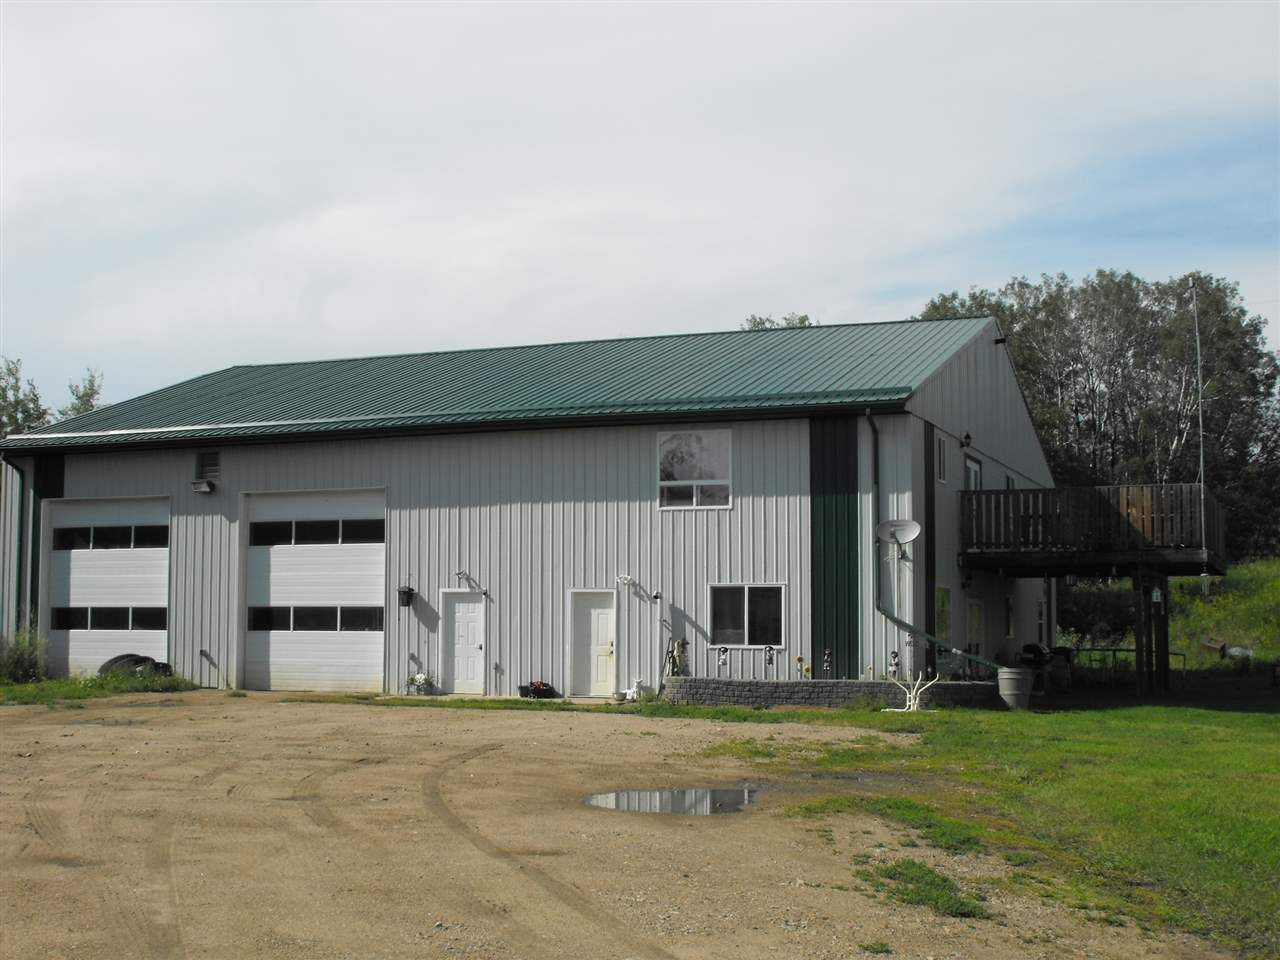 Main Photo: 7514 Twp Rd 562: Rural St. Paul County House for sale : MLS®# E4258162